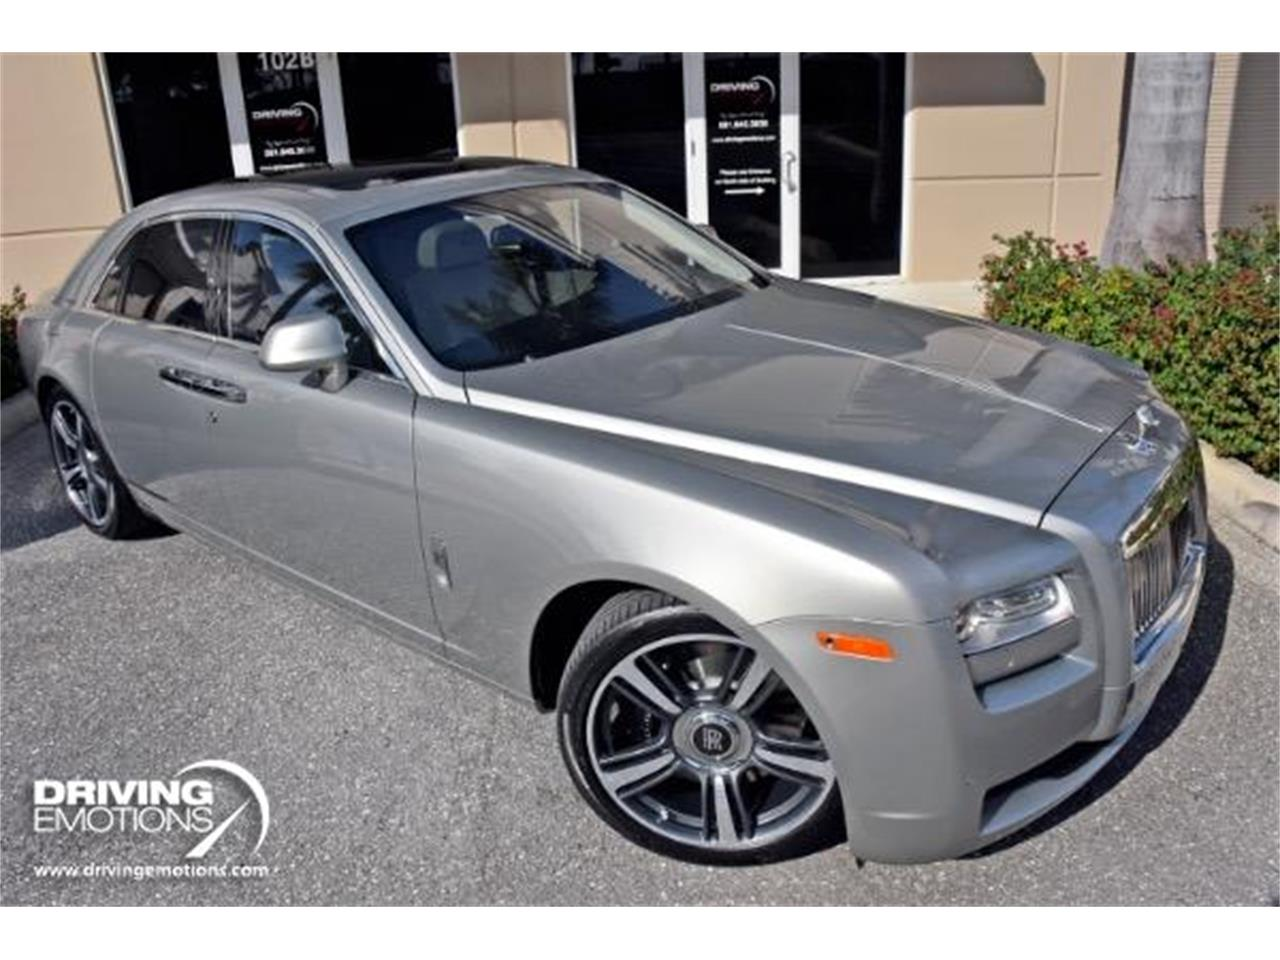 2014 Rolls-Royce Silver Ghost (CC-1329222) for sale in West Palm Beach, Florida